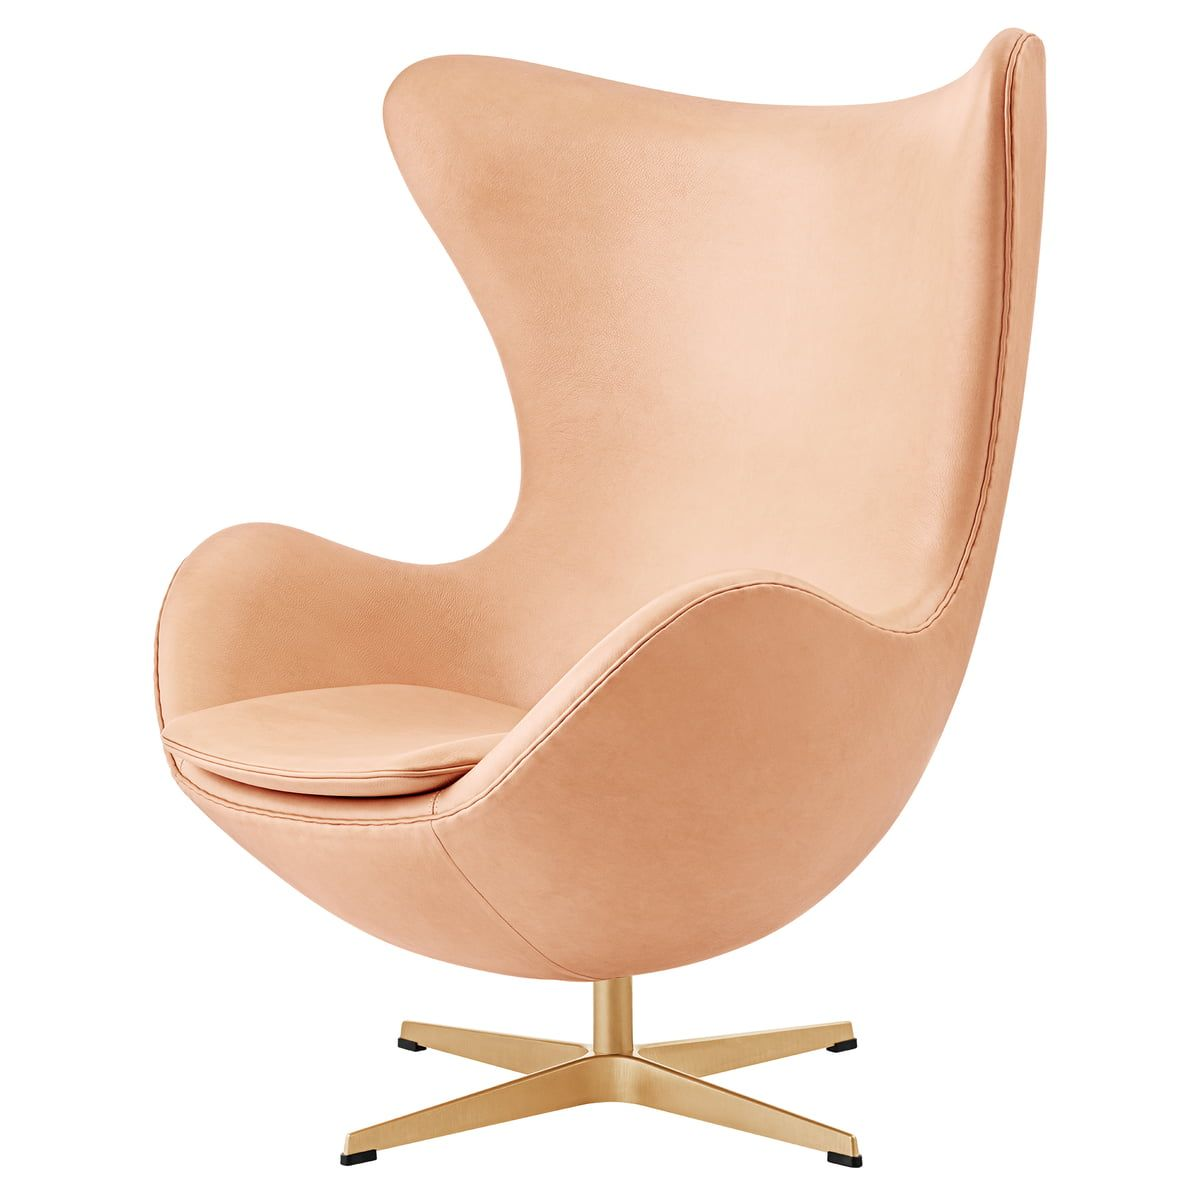 Lounge Sessel Egg Lounge Sessel Orange Egg Chair Kaufen Ei Sessel Online Leder